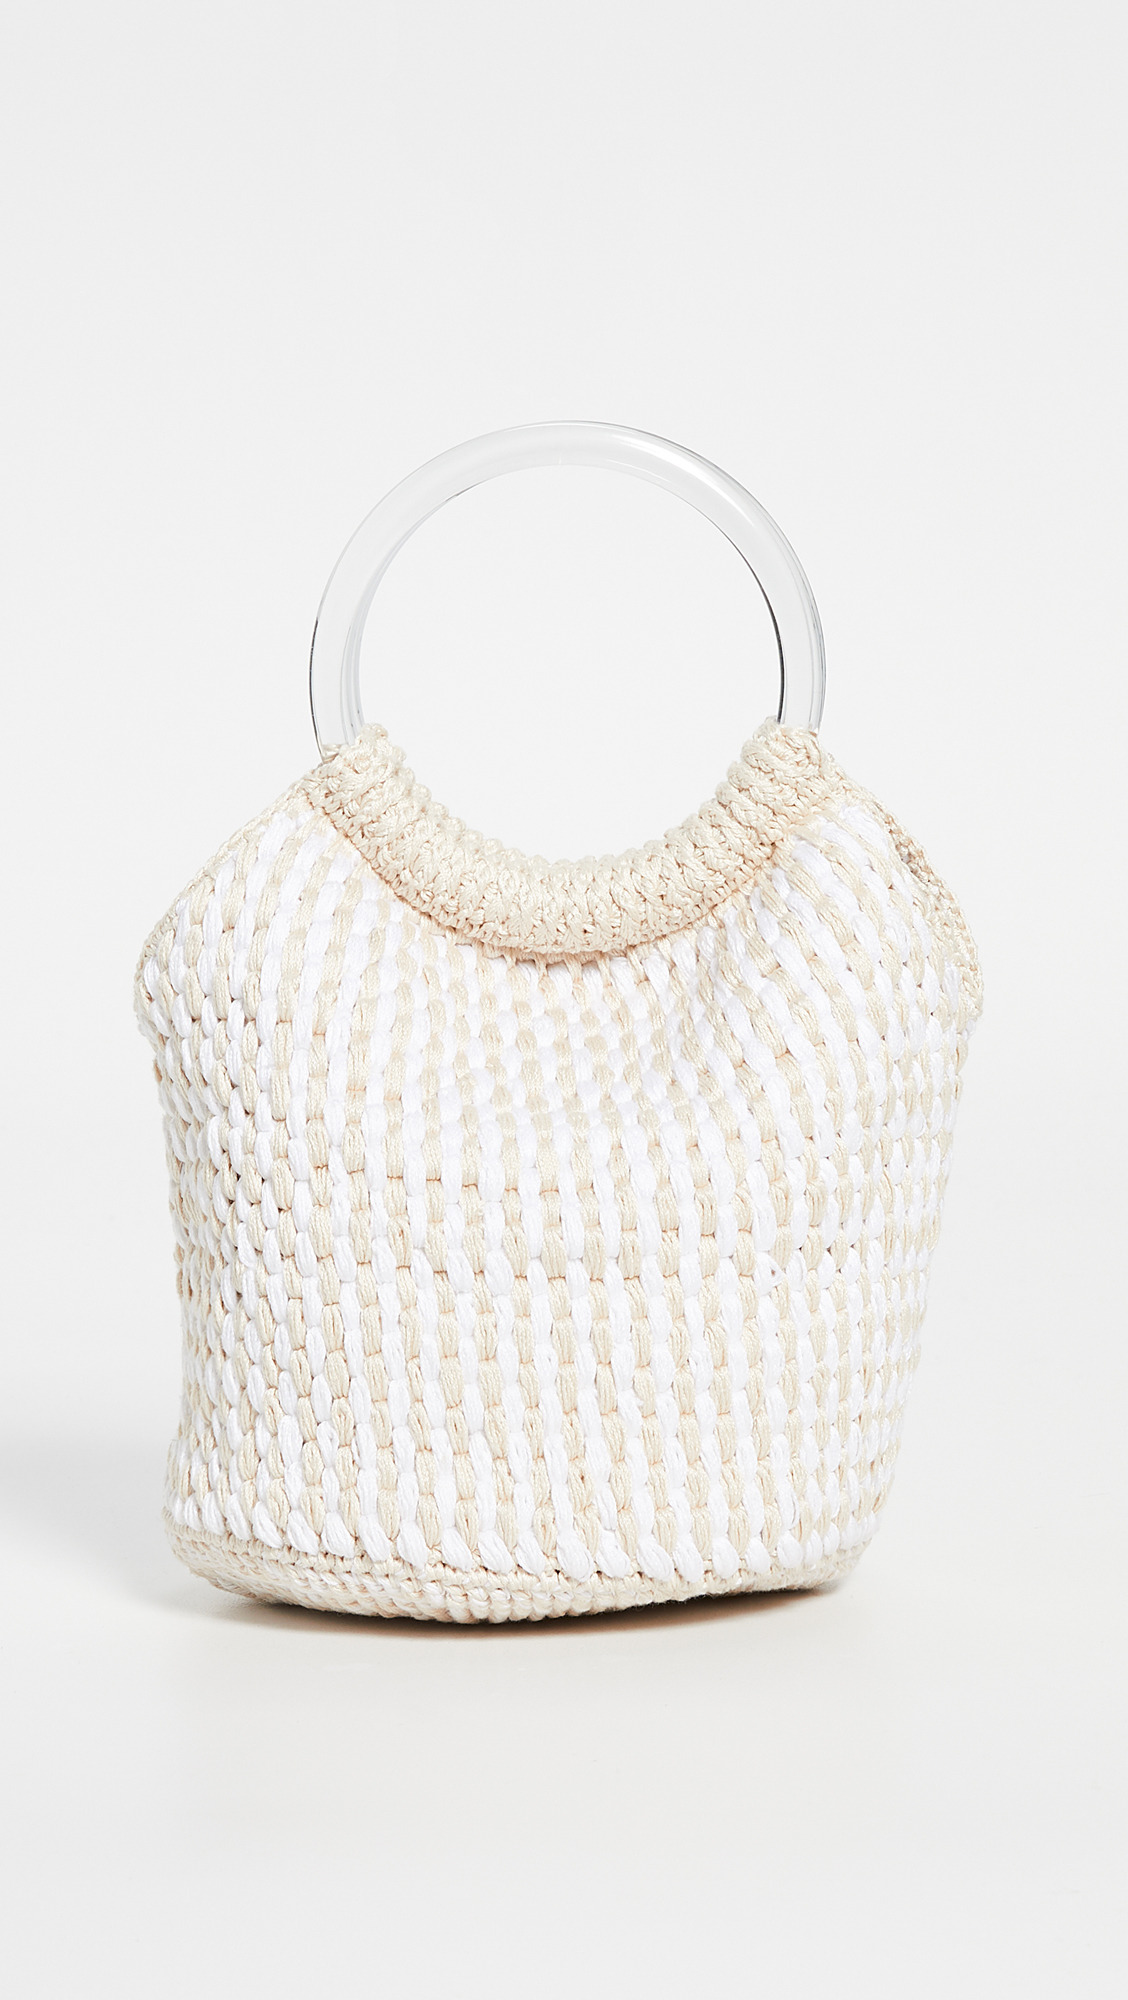 Crochet Knit Bag